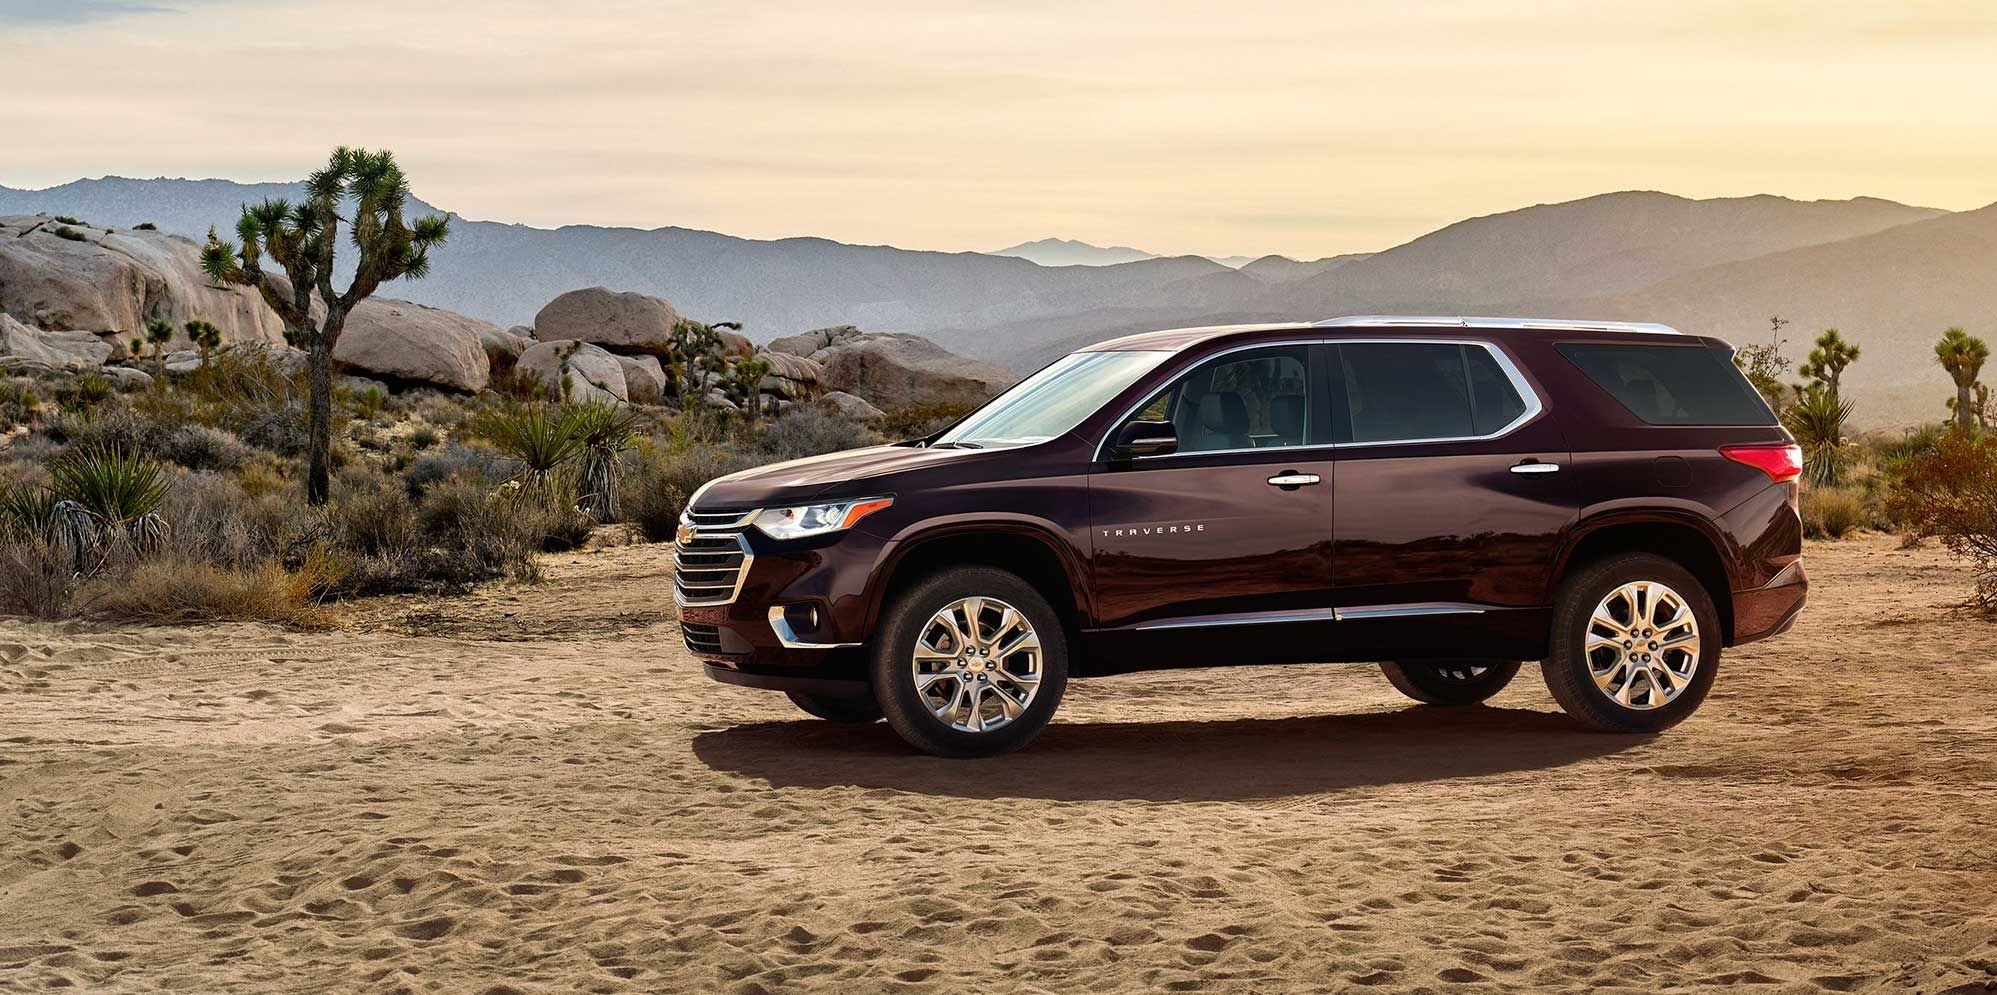 2020 Chevy Traverse Research New